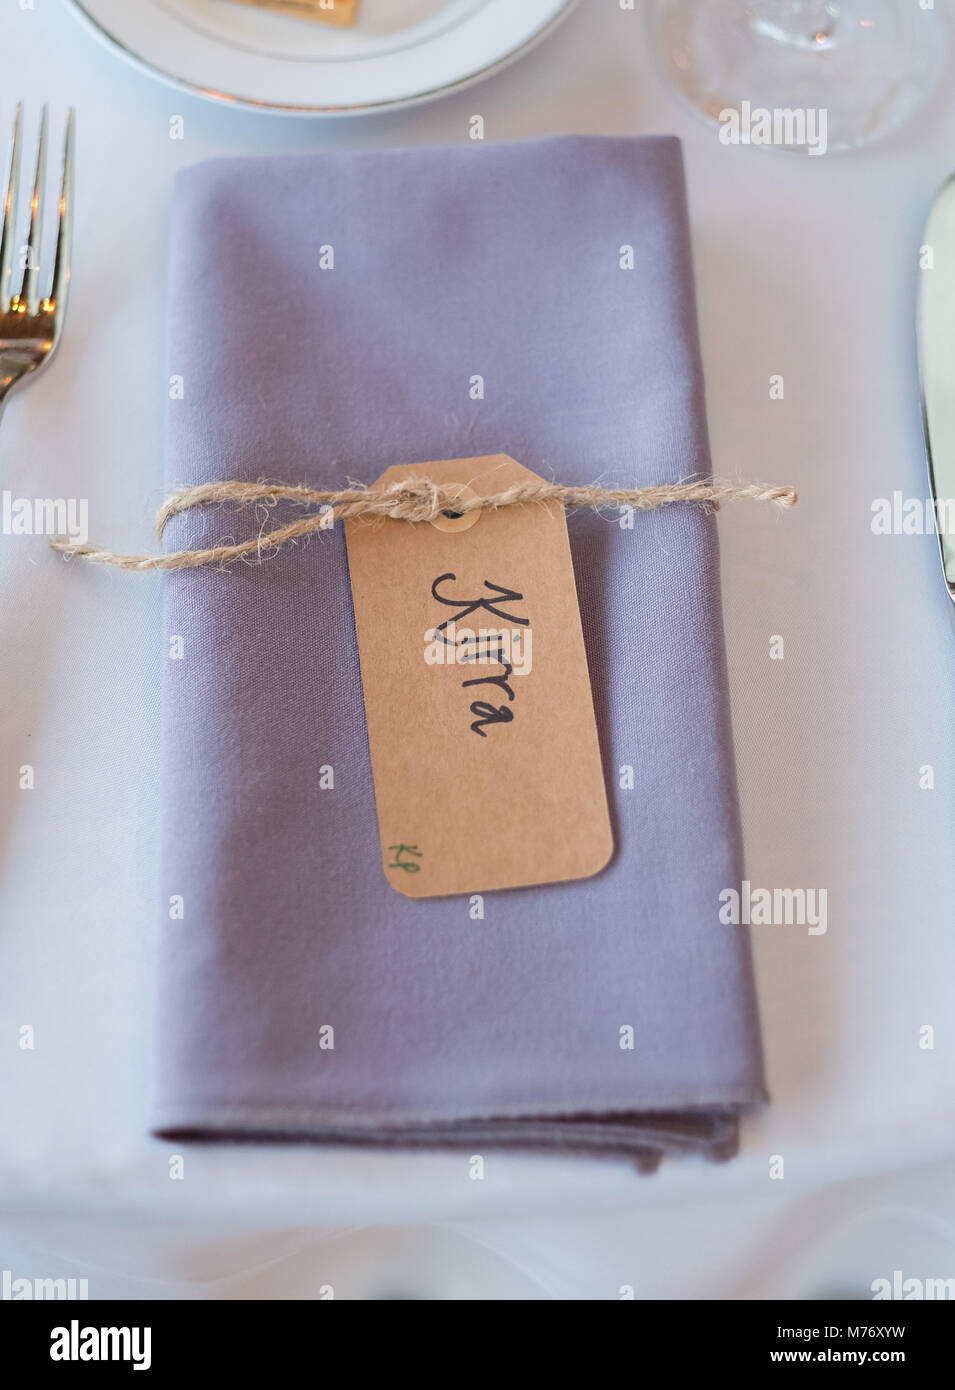 folded napkins with name tags at reception stock photo 176559149